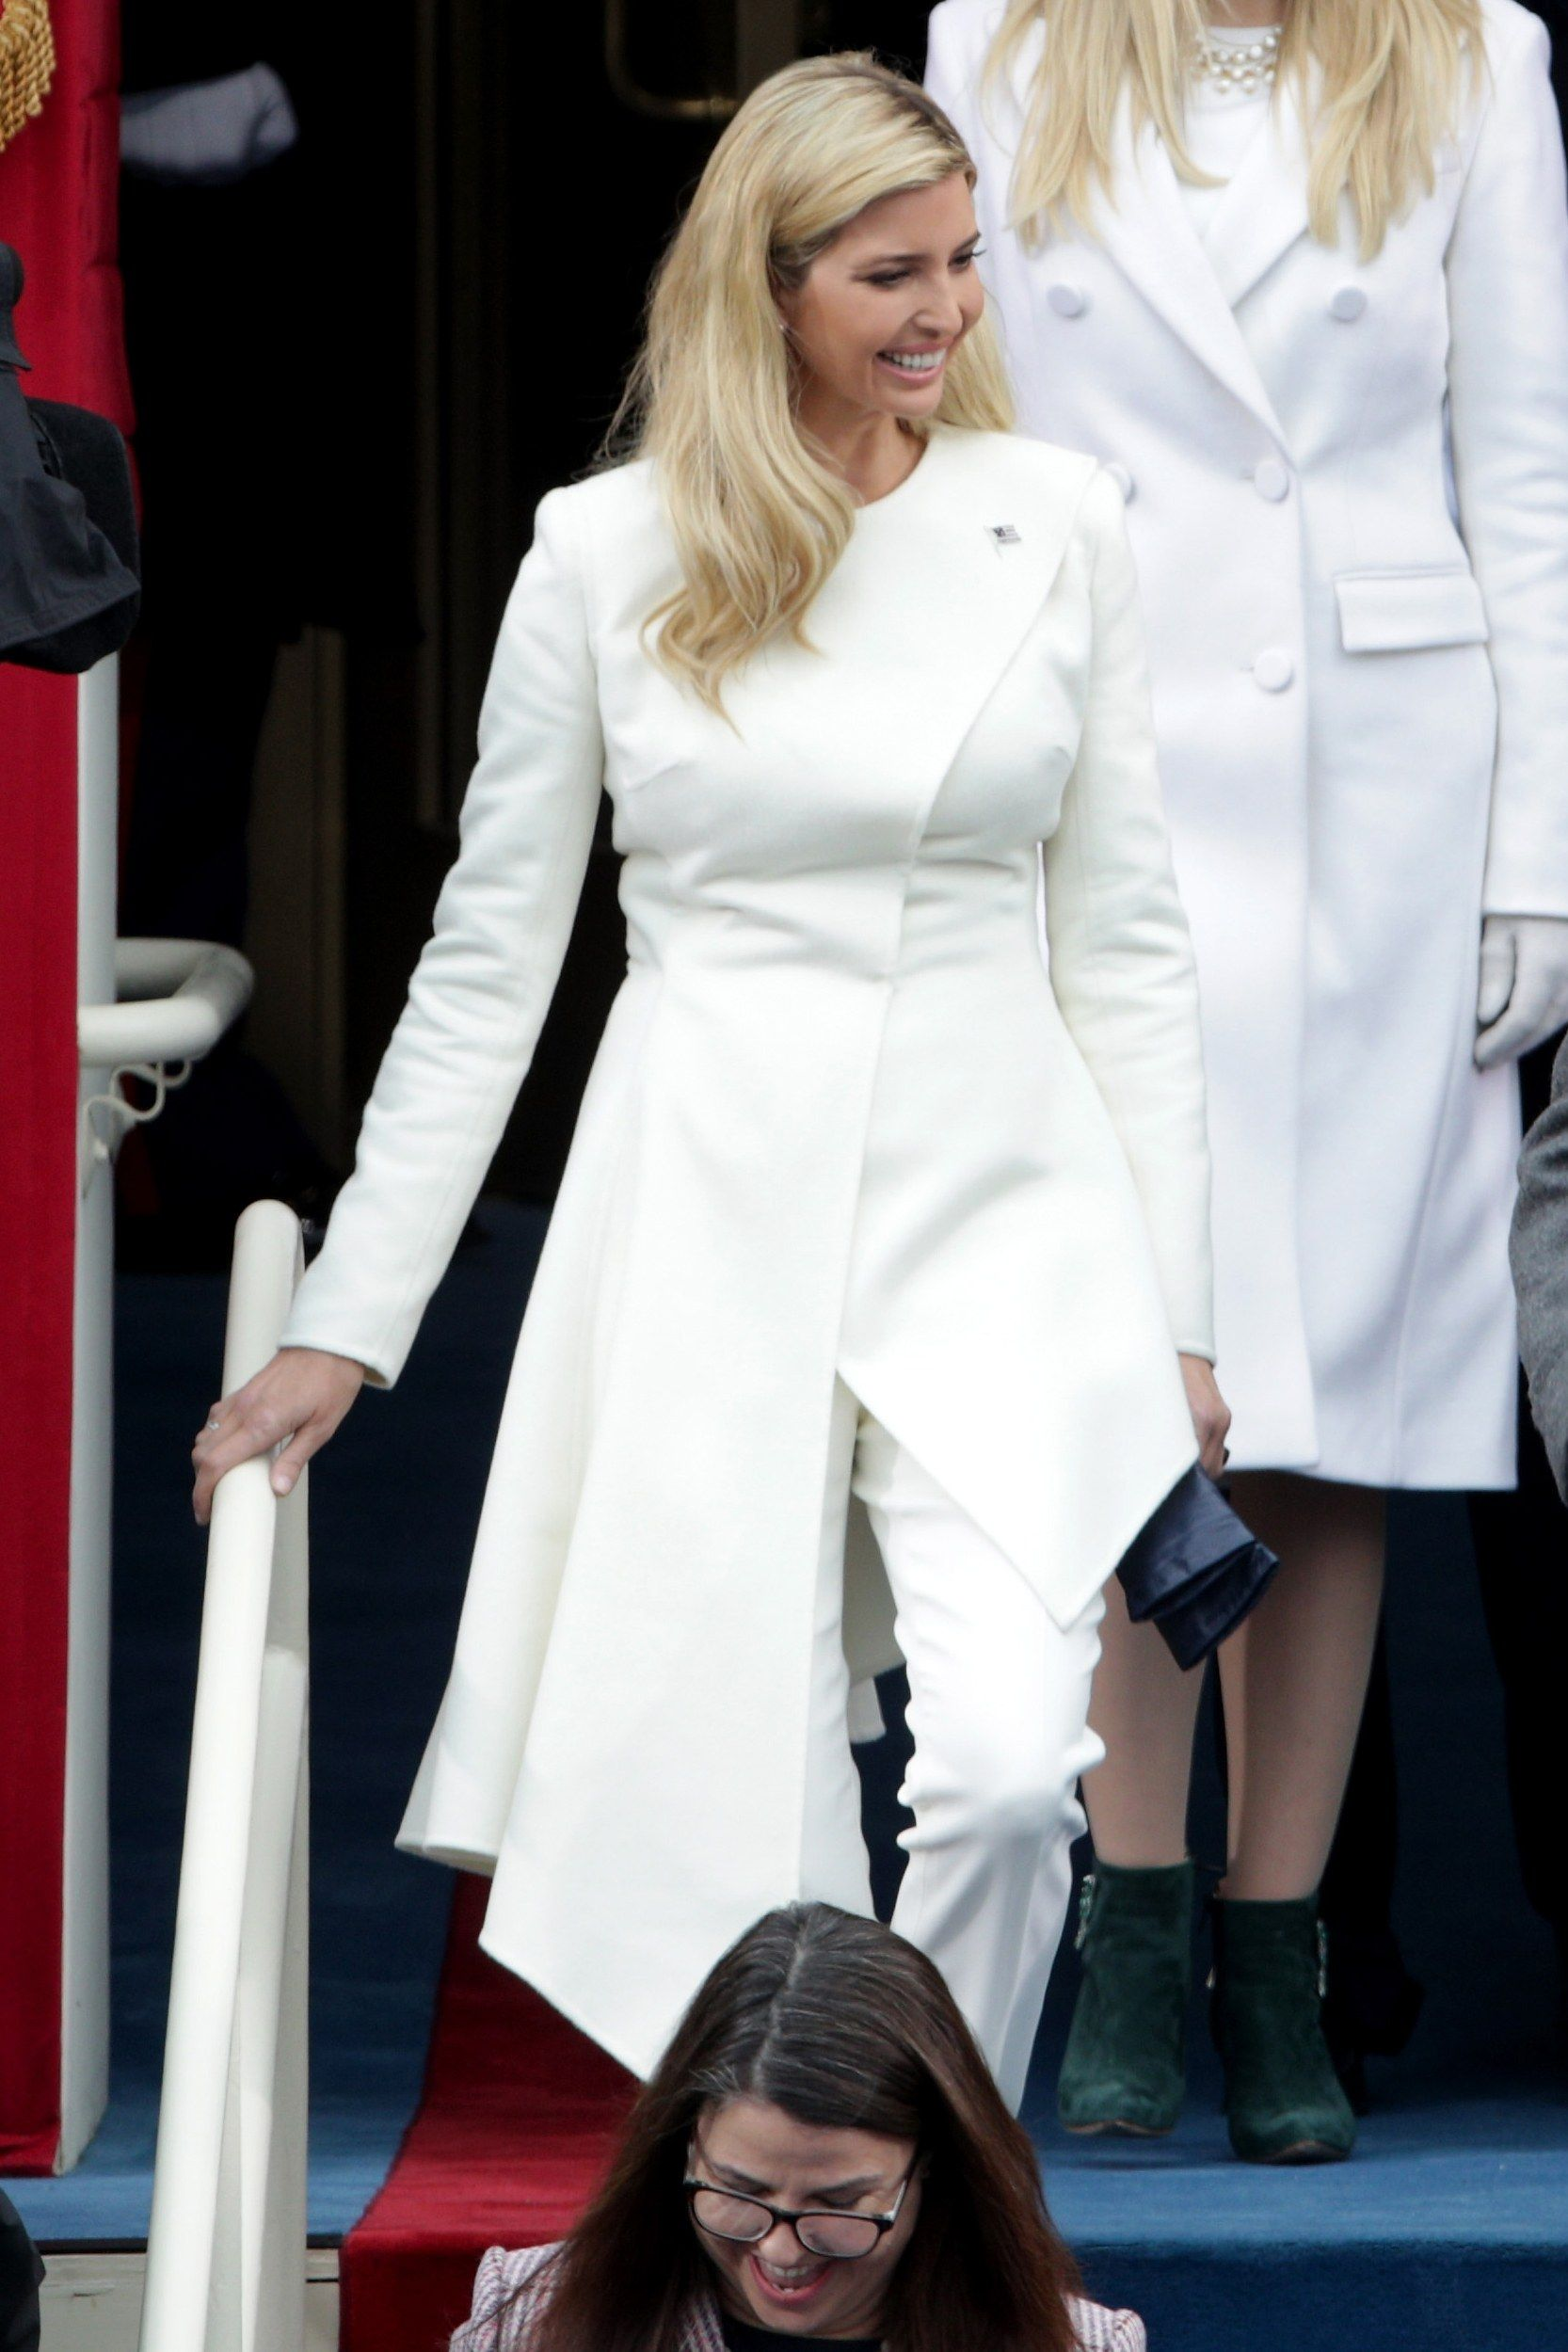 The Meaning Behind Ivanka Trump's White Pantsuit at the Inauguration